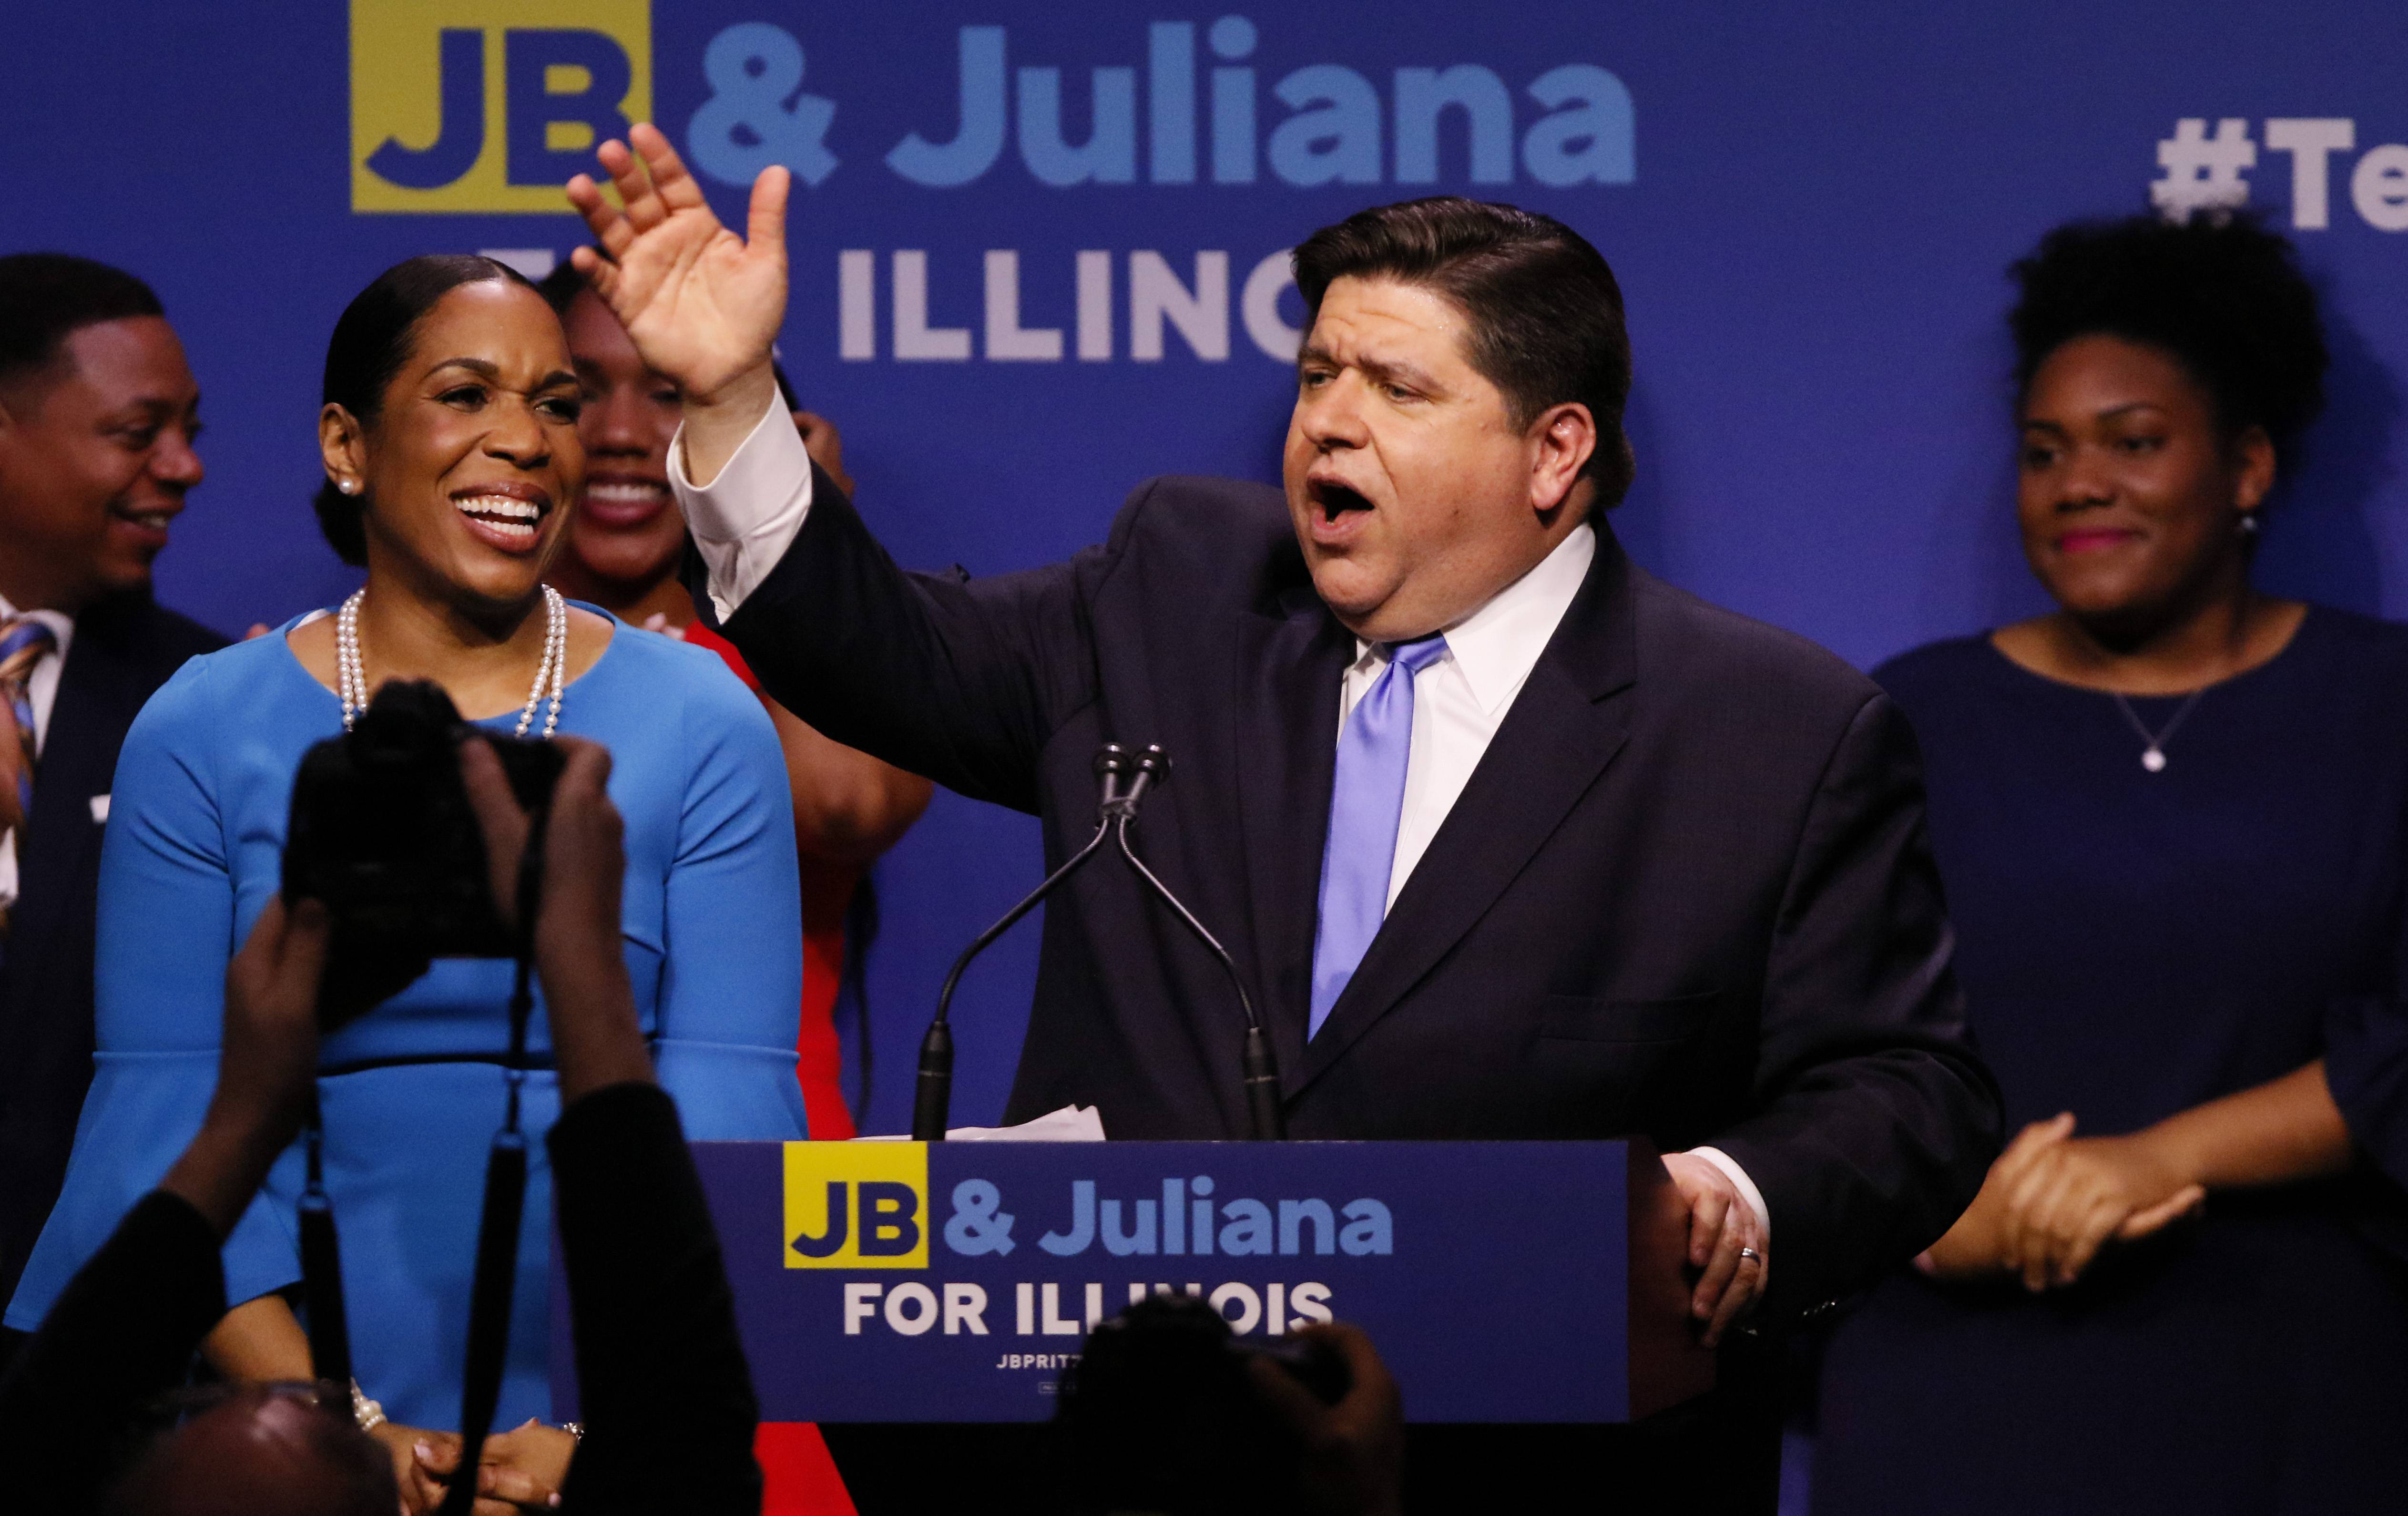 Democratic candidate for governor J.B. Pritzker celebrates his primary election victory at the Marriott Marquis Chicago. At left is Pritzker's running mate Juliana Stratton.